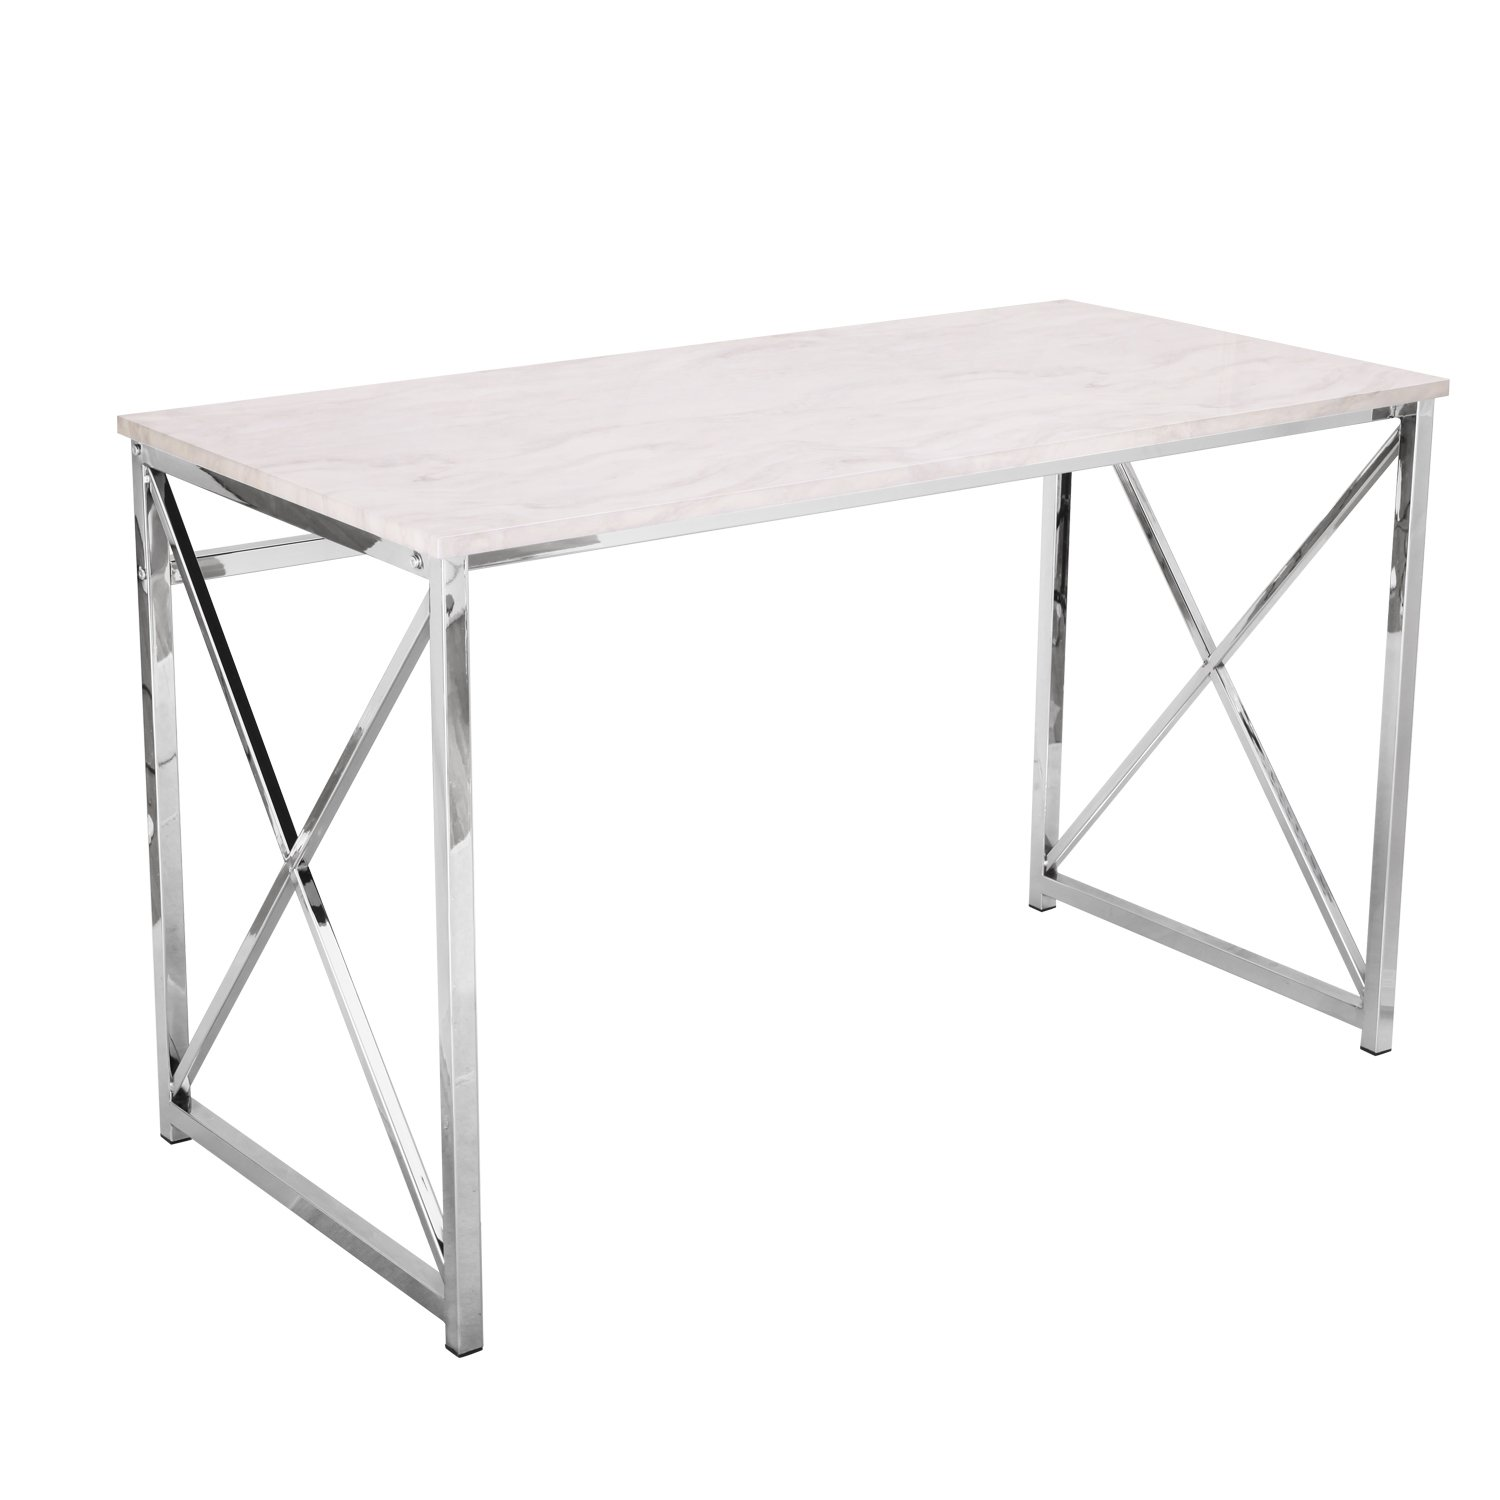 Adeco 48x24 inches Computer Desk with Marble Style Table top with Chrome Metal Cross legs, Heights 30 Inches